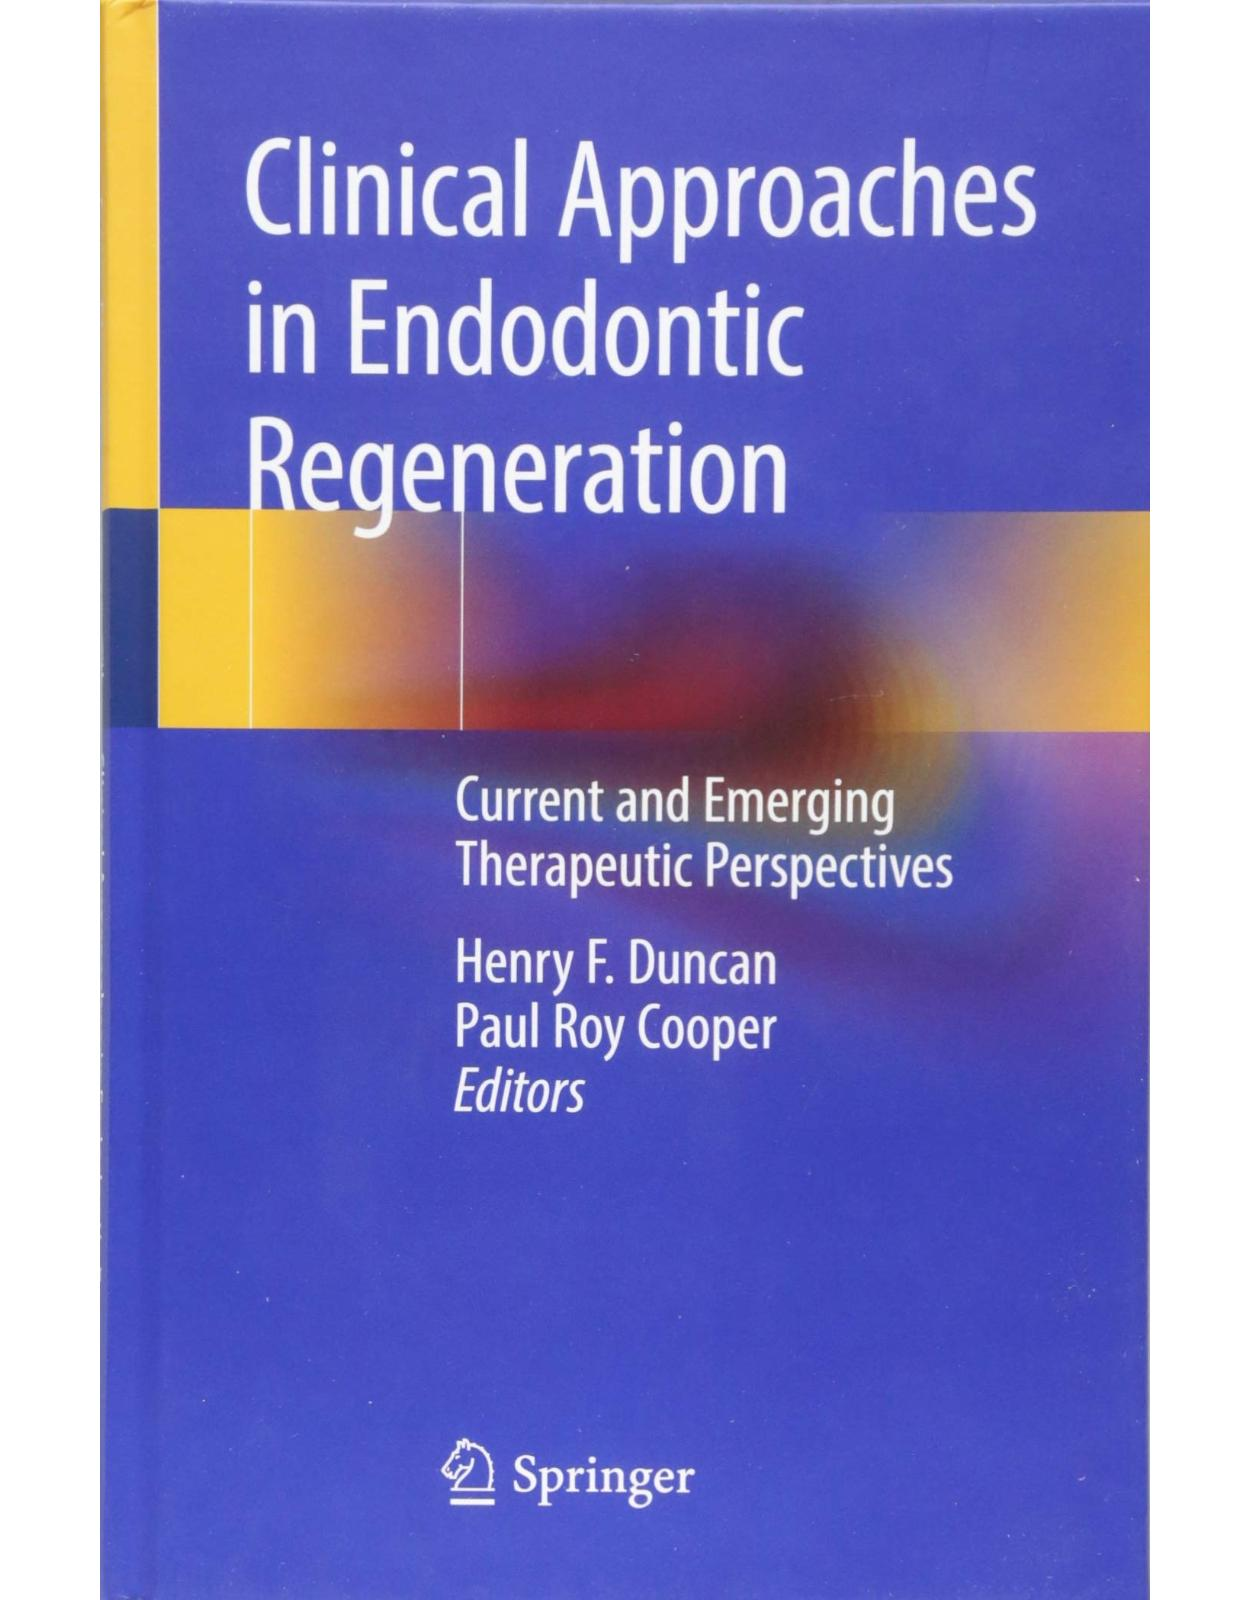 Clinical Approaches in Endodontic Regeneration